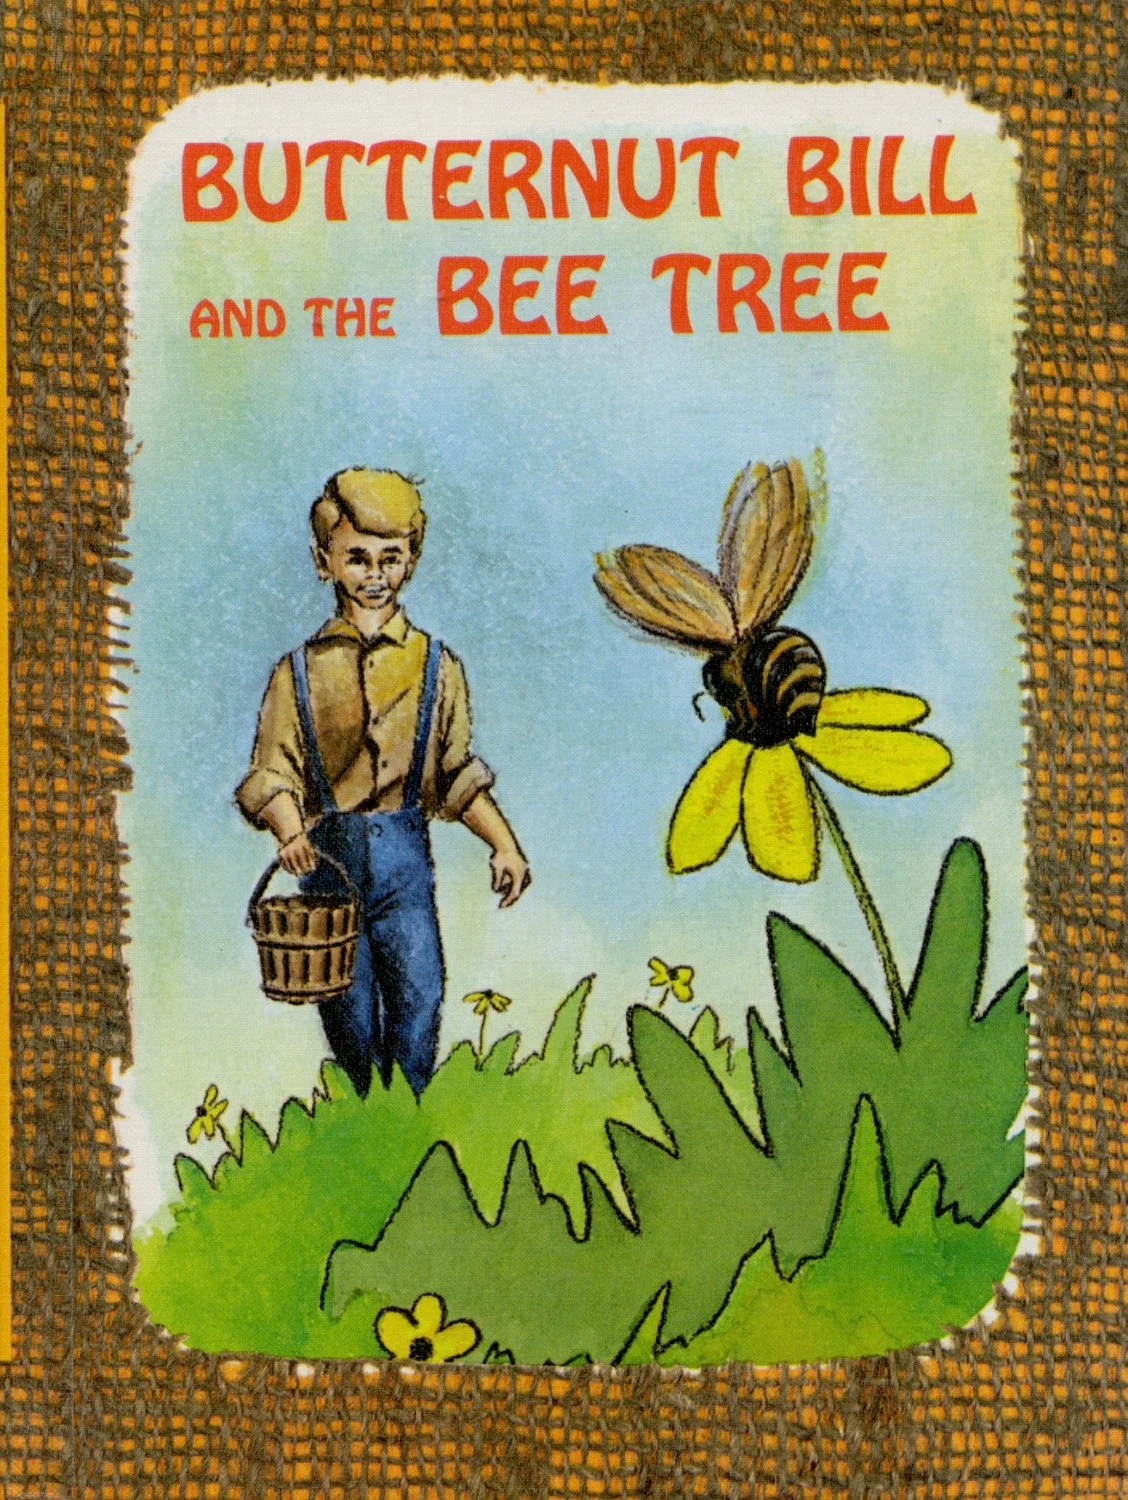 Butternut Bill And The Bee Tree Edith Mccall Benefic Press